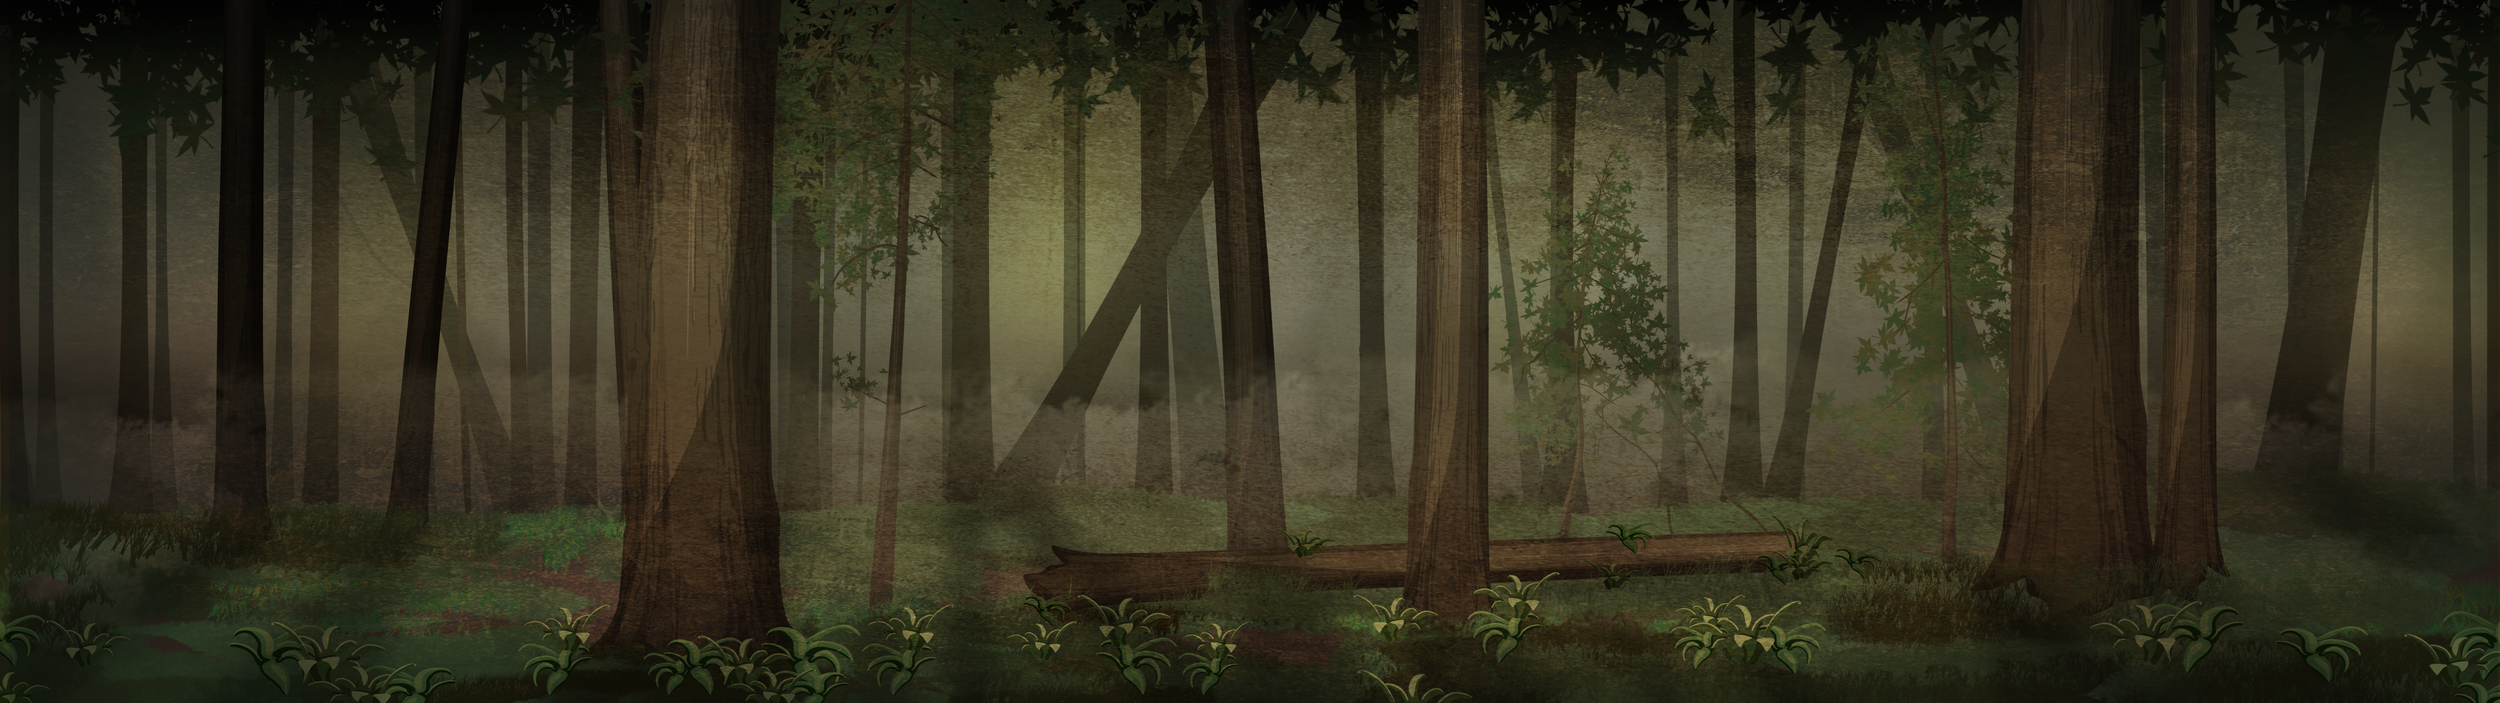 Forest_Pan_V3.png